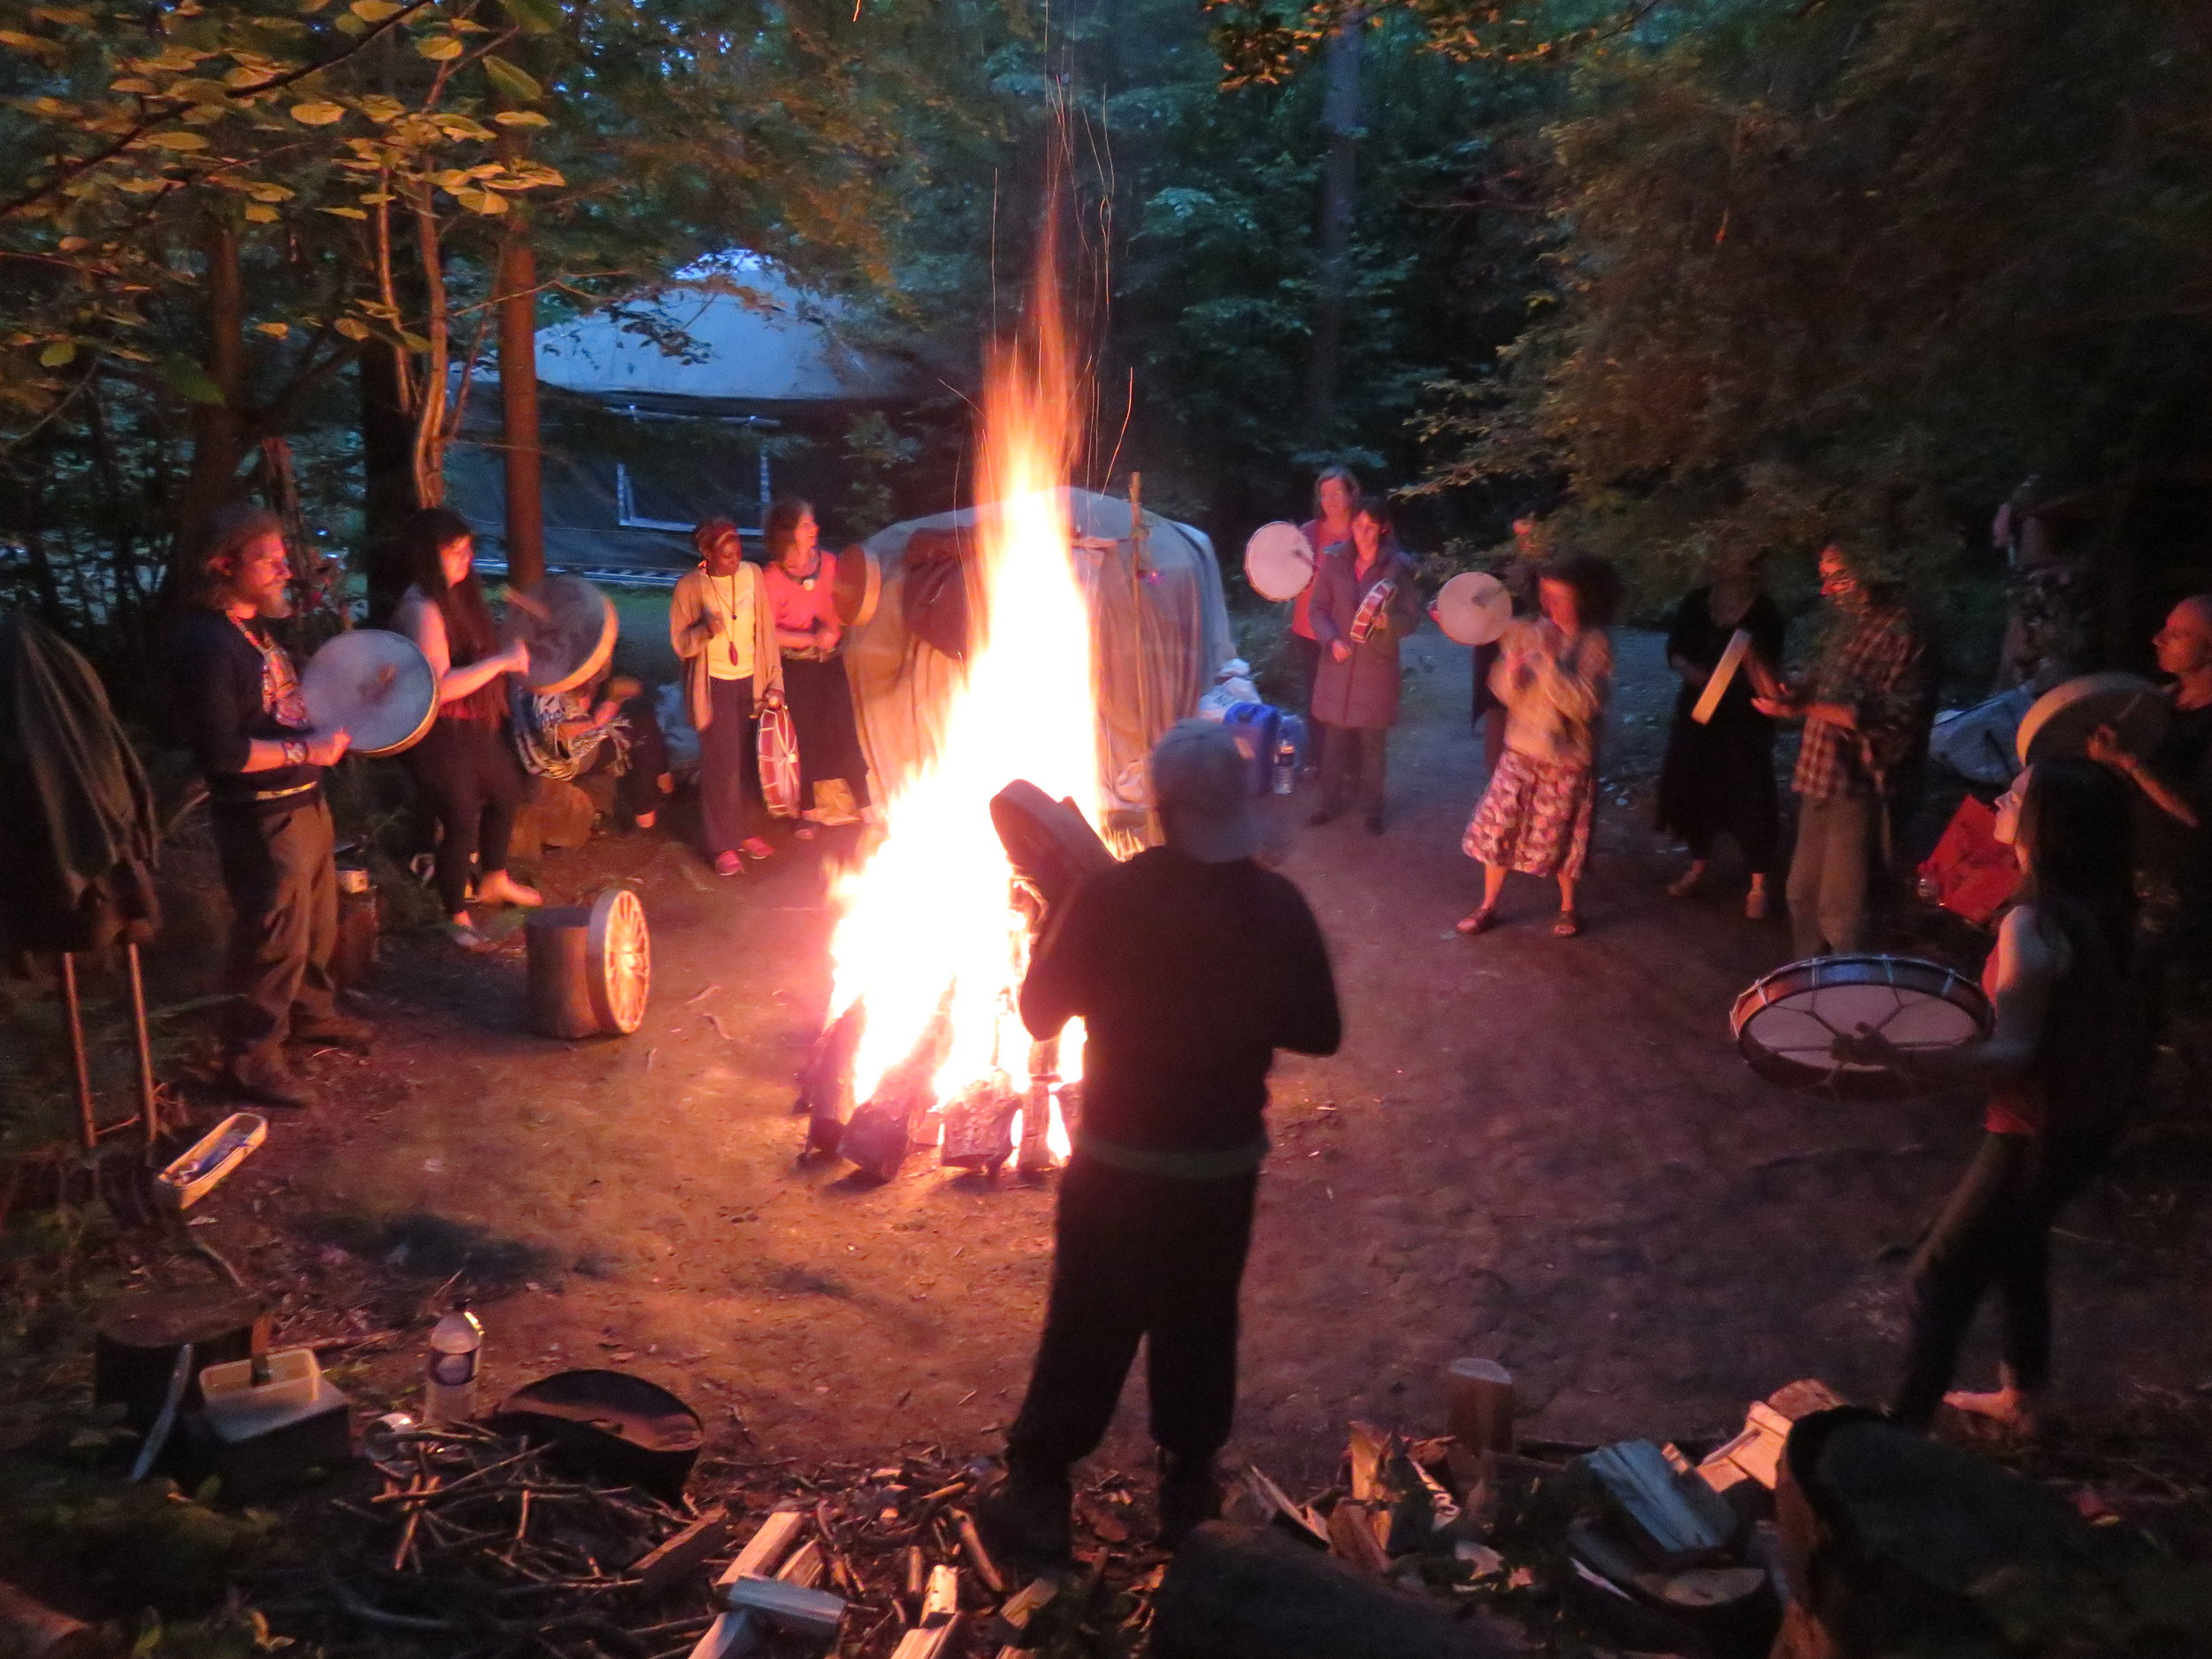 Shamanic training - Explore the ancient art of shamanism, held in the heart of the woods, rebirthing traditions that are relevant for today. Includes new 2, 3, 4 and 5 year training programmes.